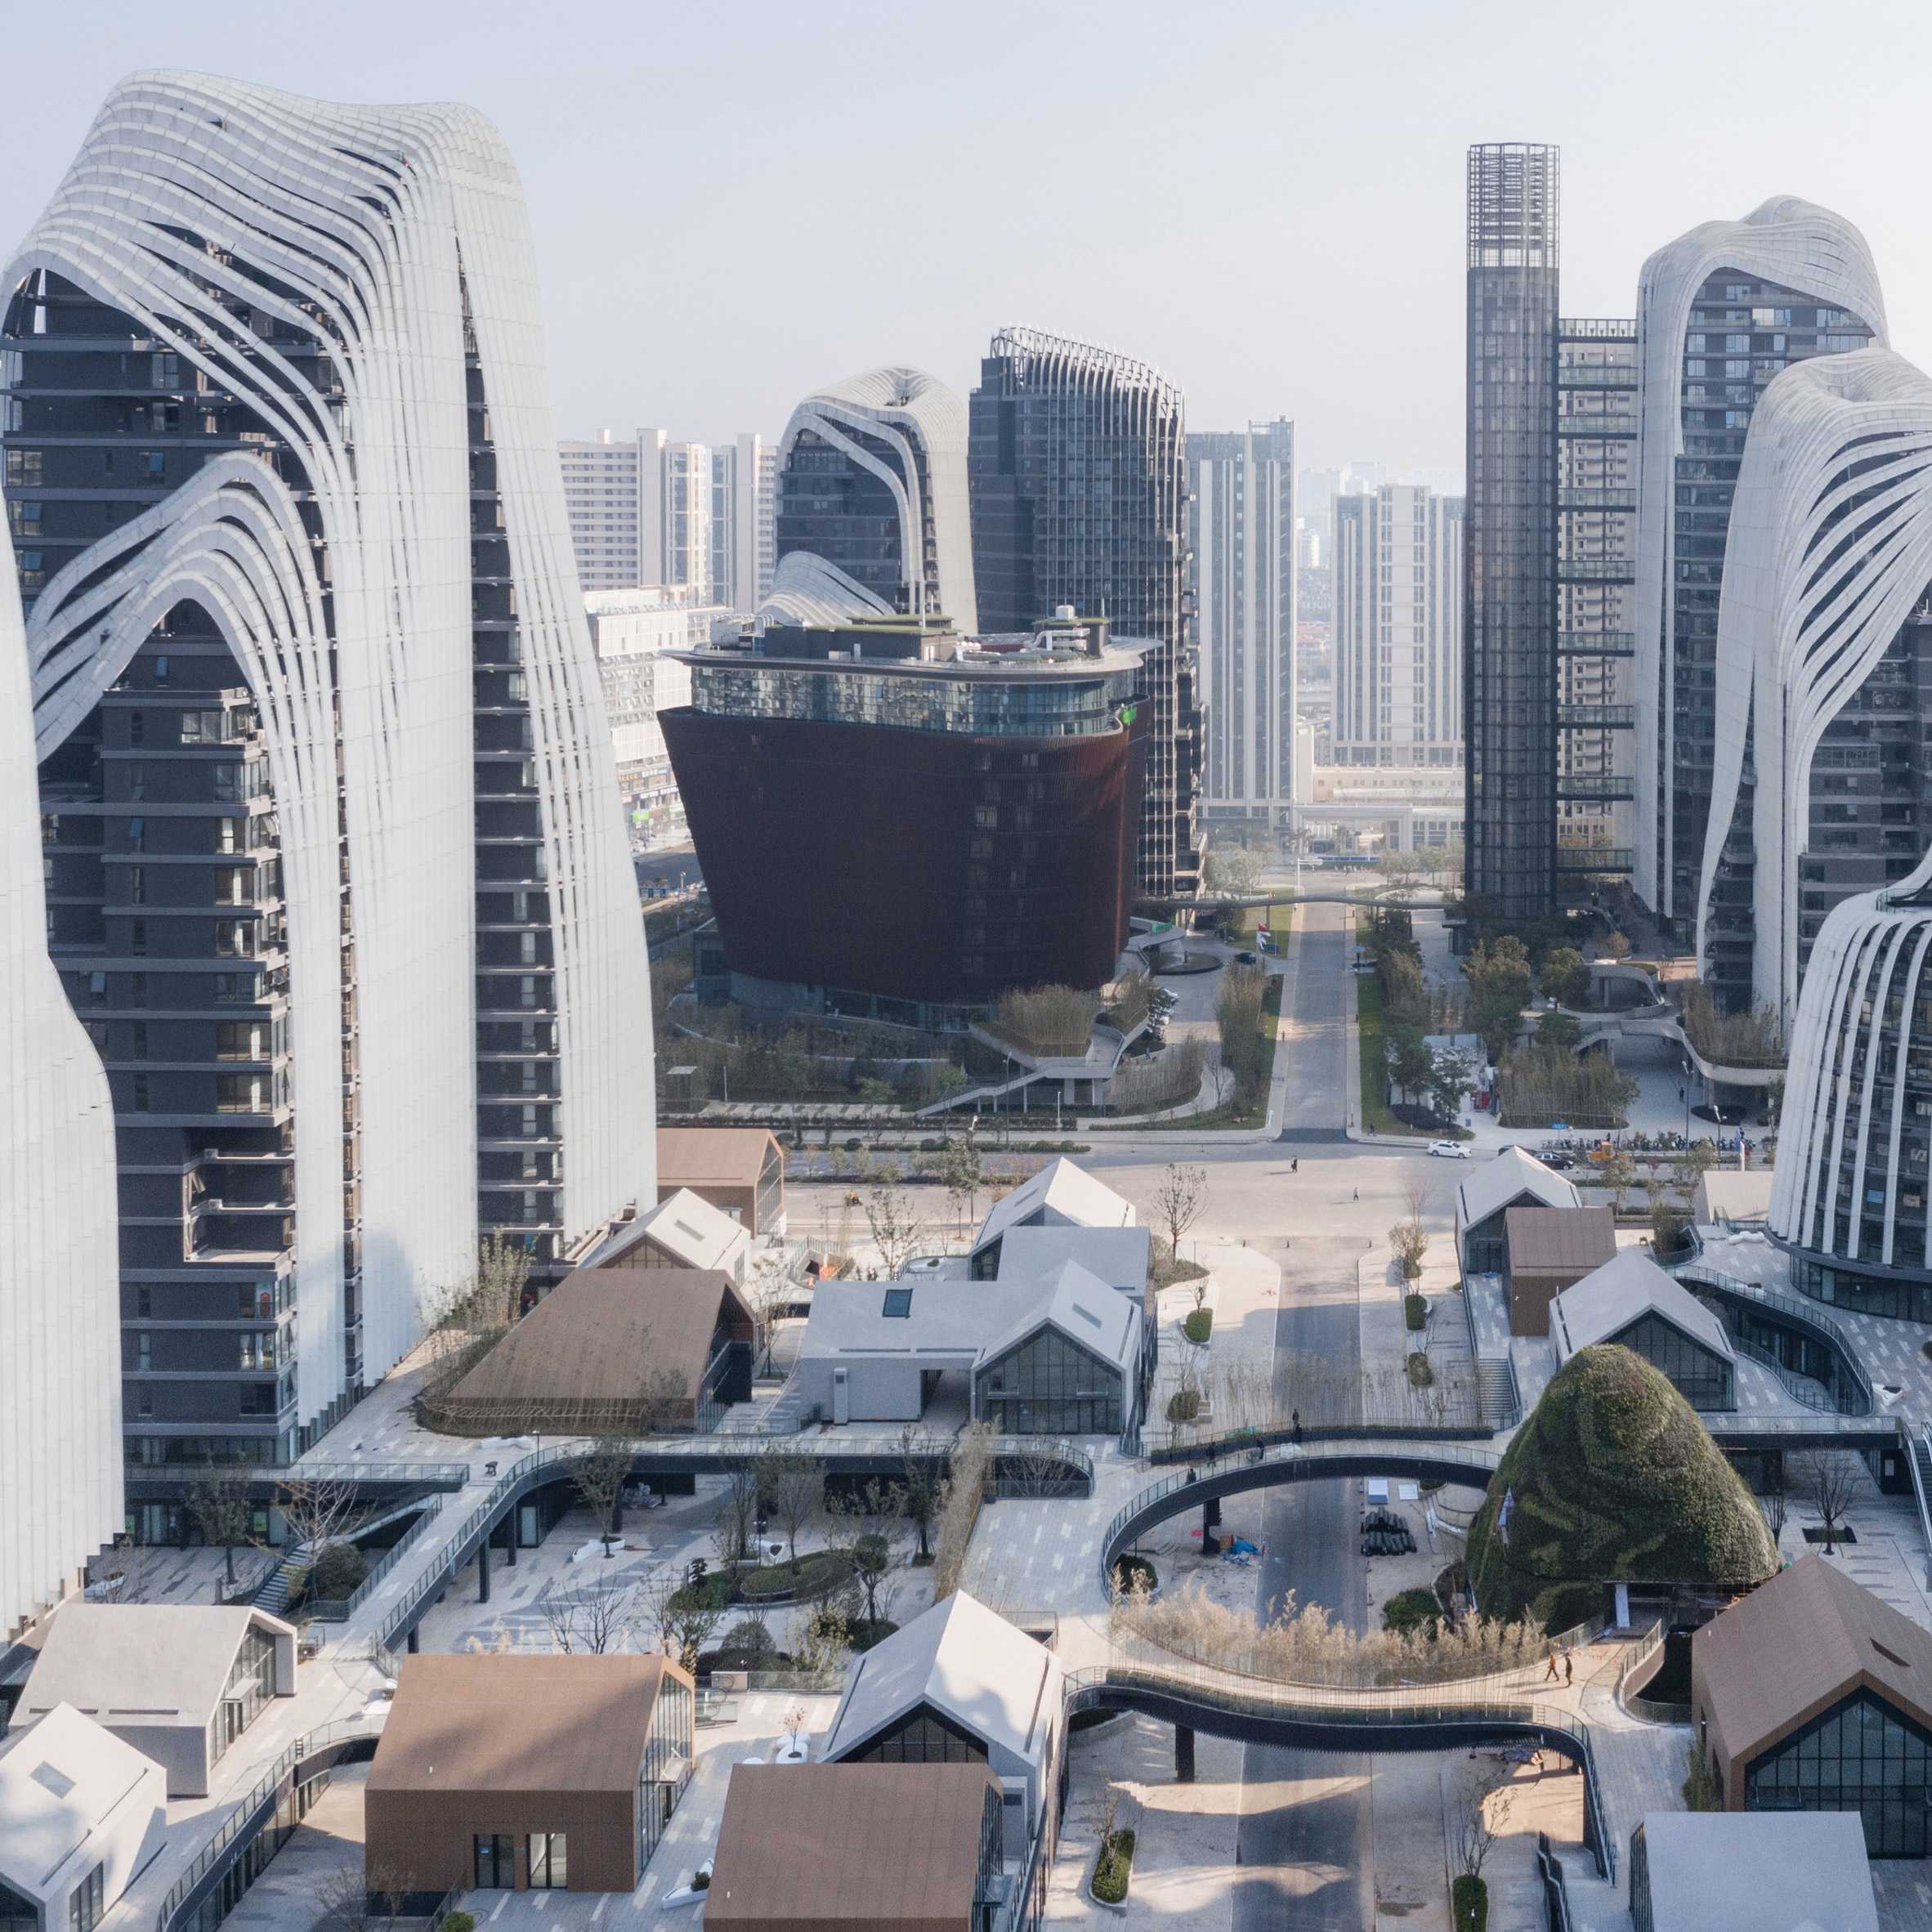 12 new buildings to look forward to in 2020: Nanjing Zendai Himalayas Center by MAD